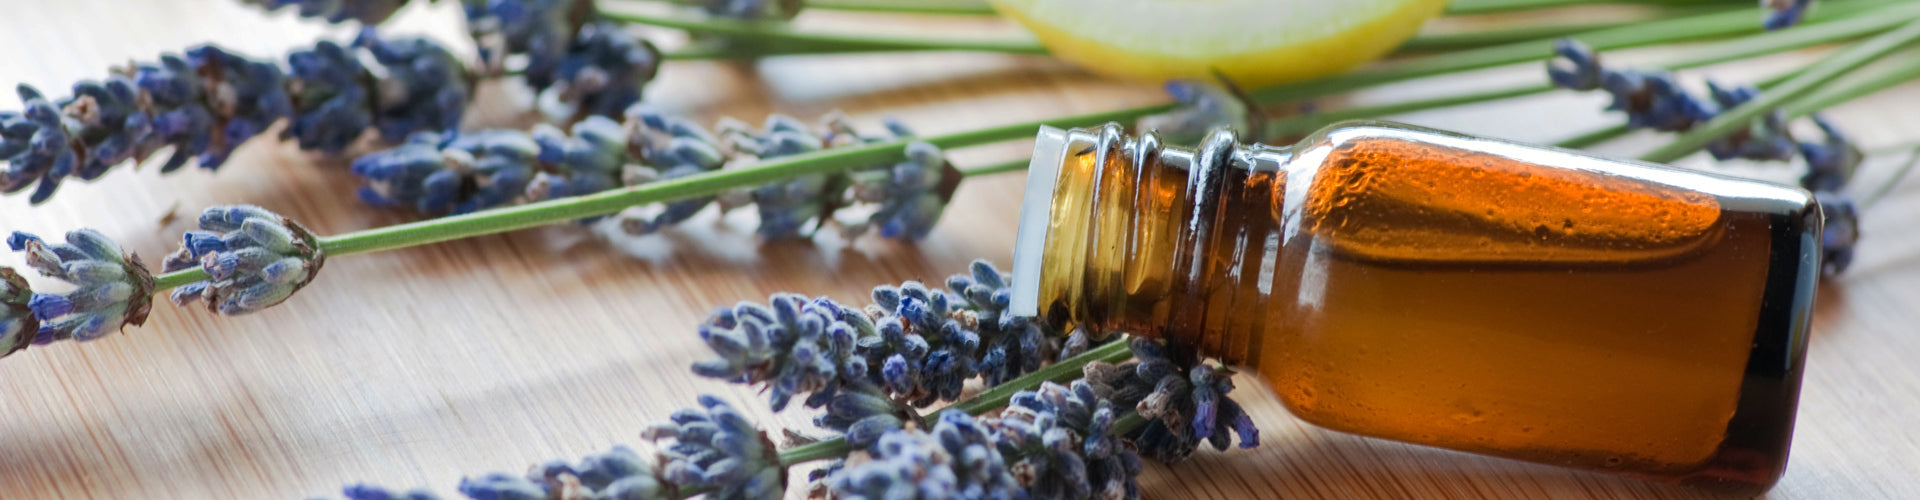 Buy Cold Pressed essential oils online at best price